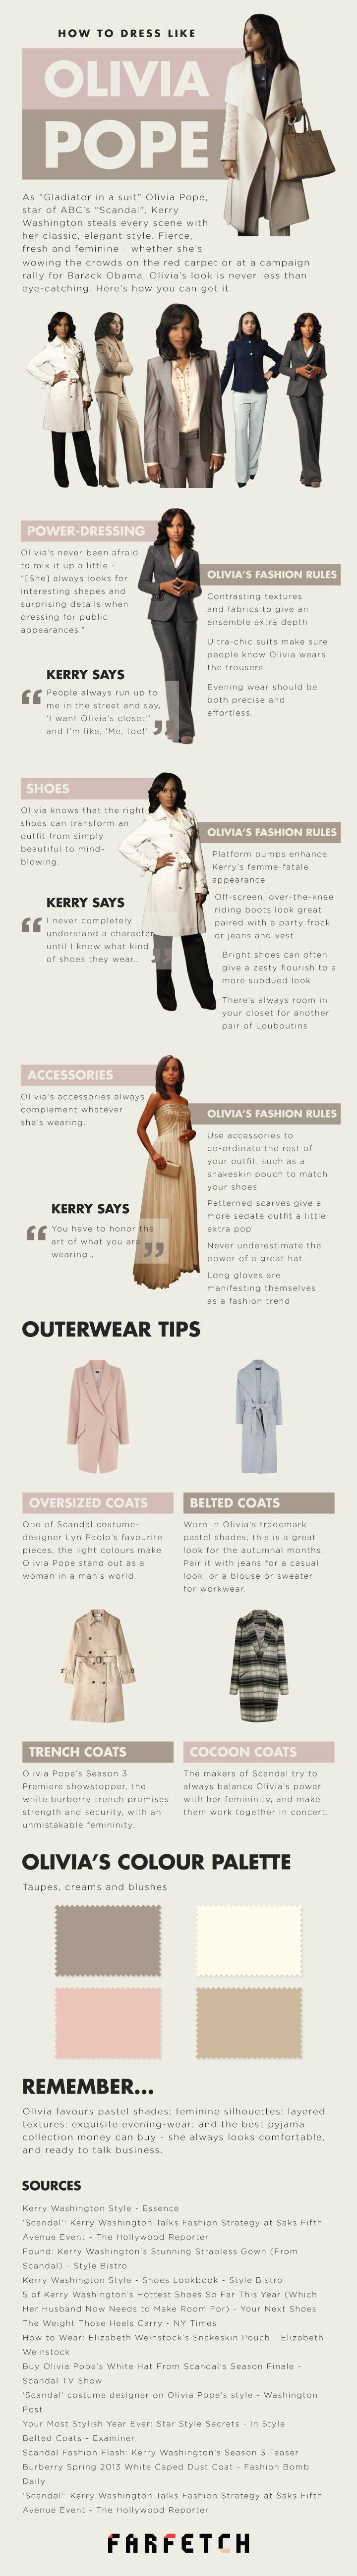 how-to-dress-like-olivia-pope